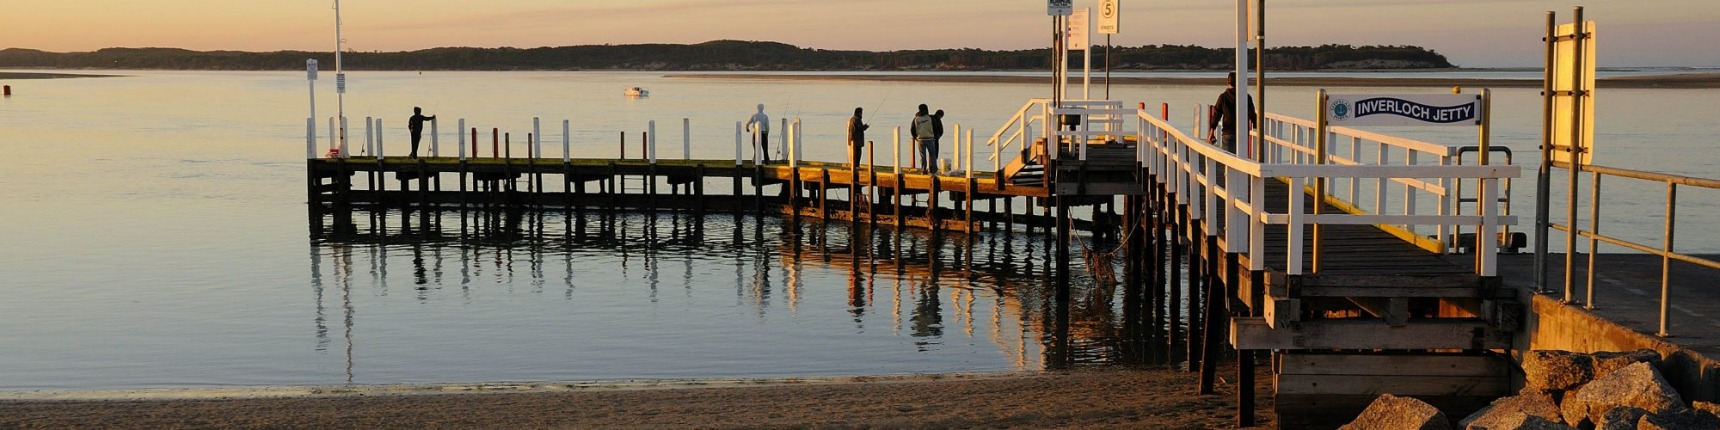 People on the pier at Inverloch.